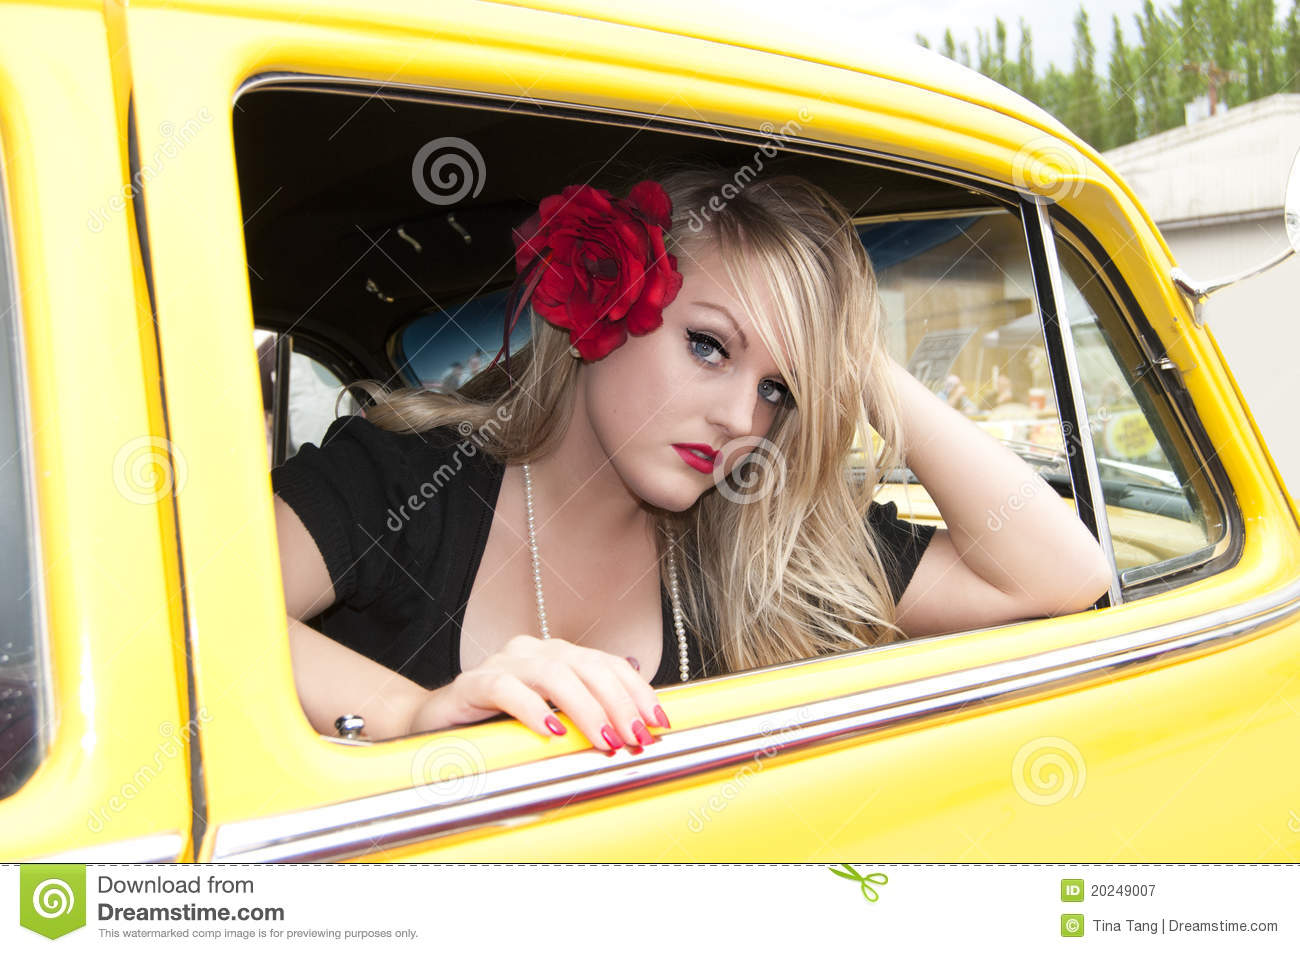 Girls And Trucks Wallpaper Pin Up Girl And Classic Car Royalty Free Stock Photography